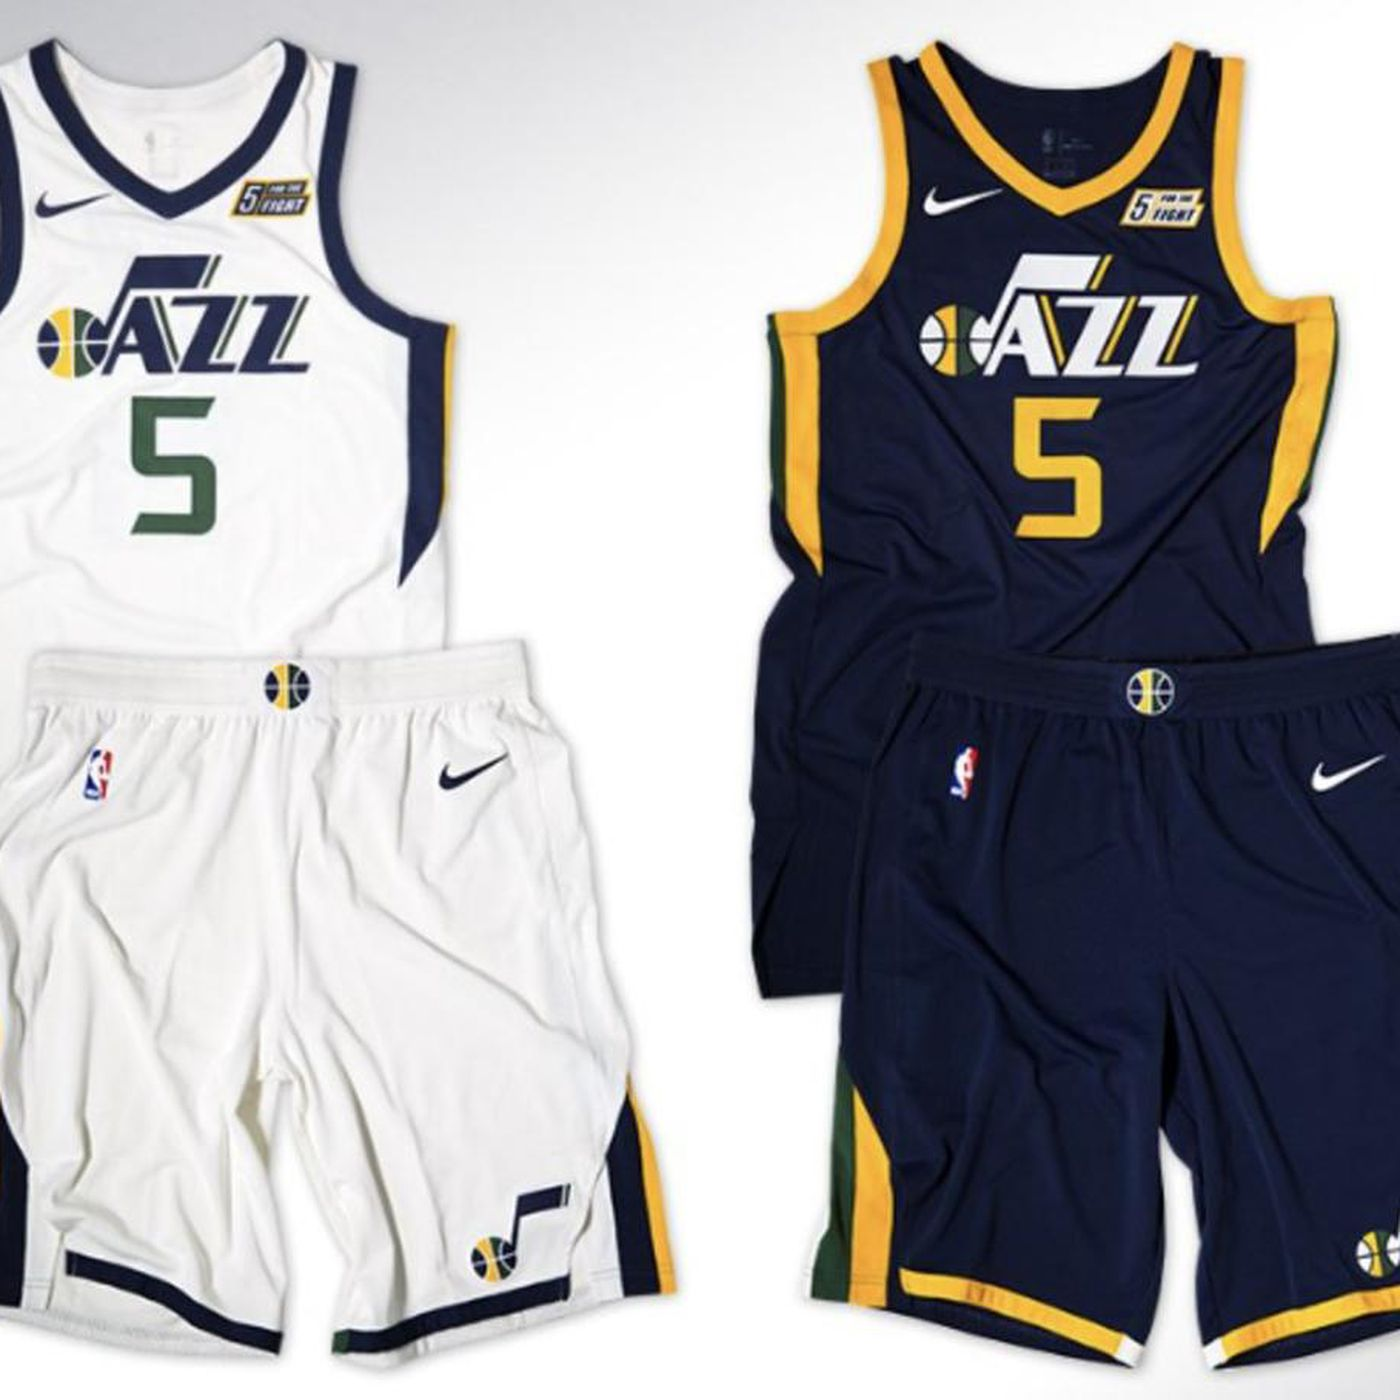 sneakers for cheap 055d0 ab6bc Here's what's different about the new Utah Jazz uniforms ...